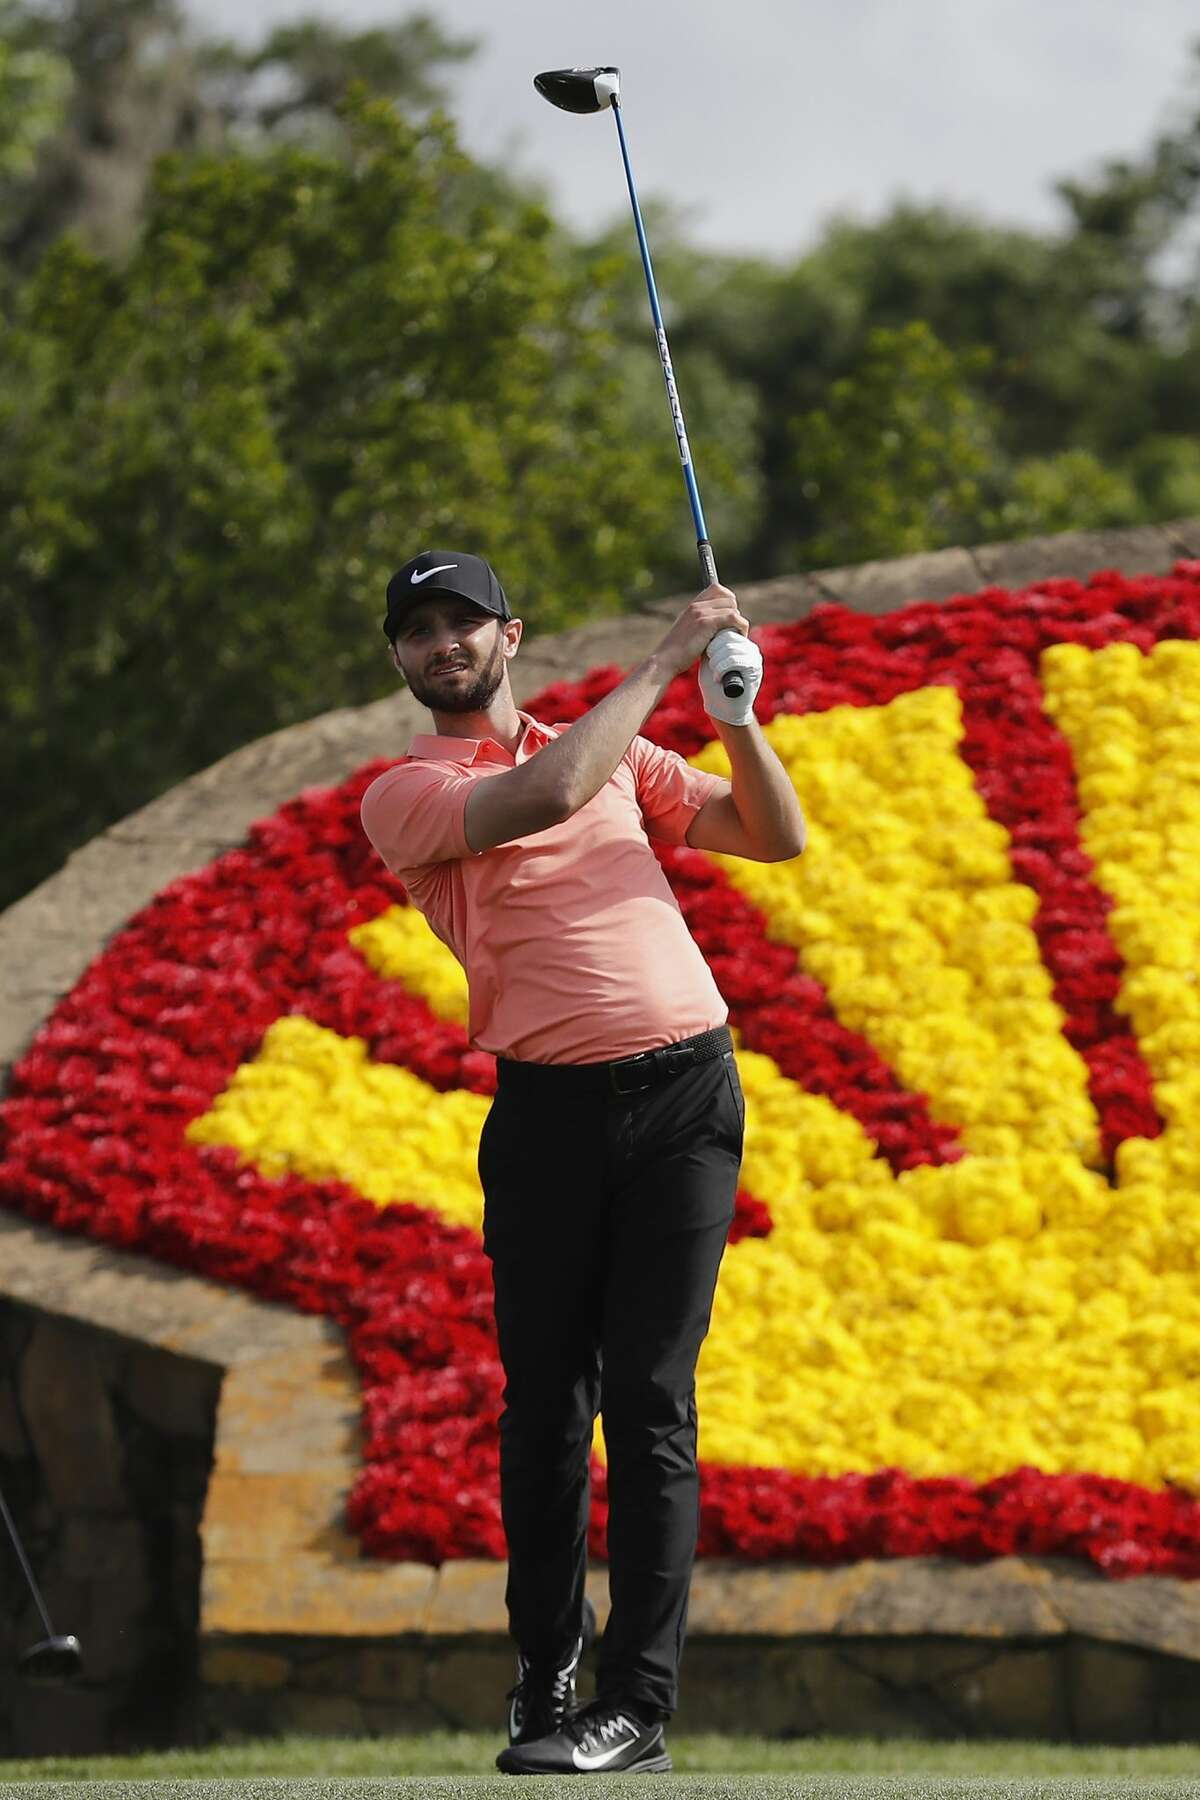 Kyle Stanley tees off on the 18th hole during the third round of the Shell Houston Open on Saturday, April 1, 2017 at The Golf Club of Houston in Humble Texas.